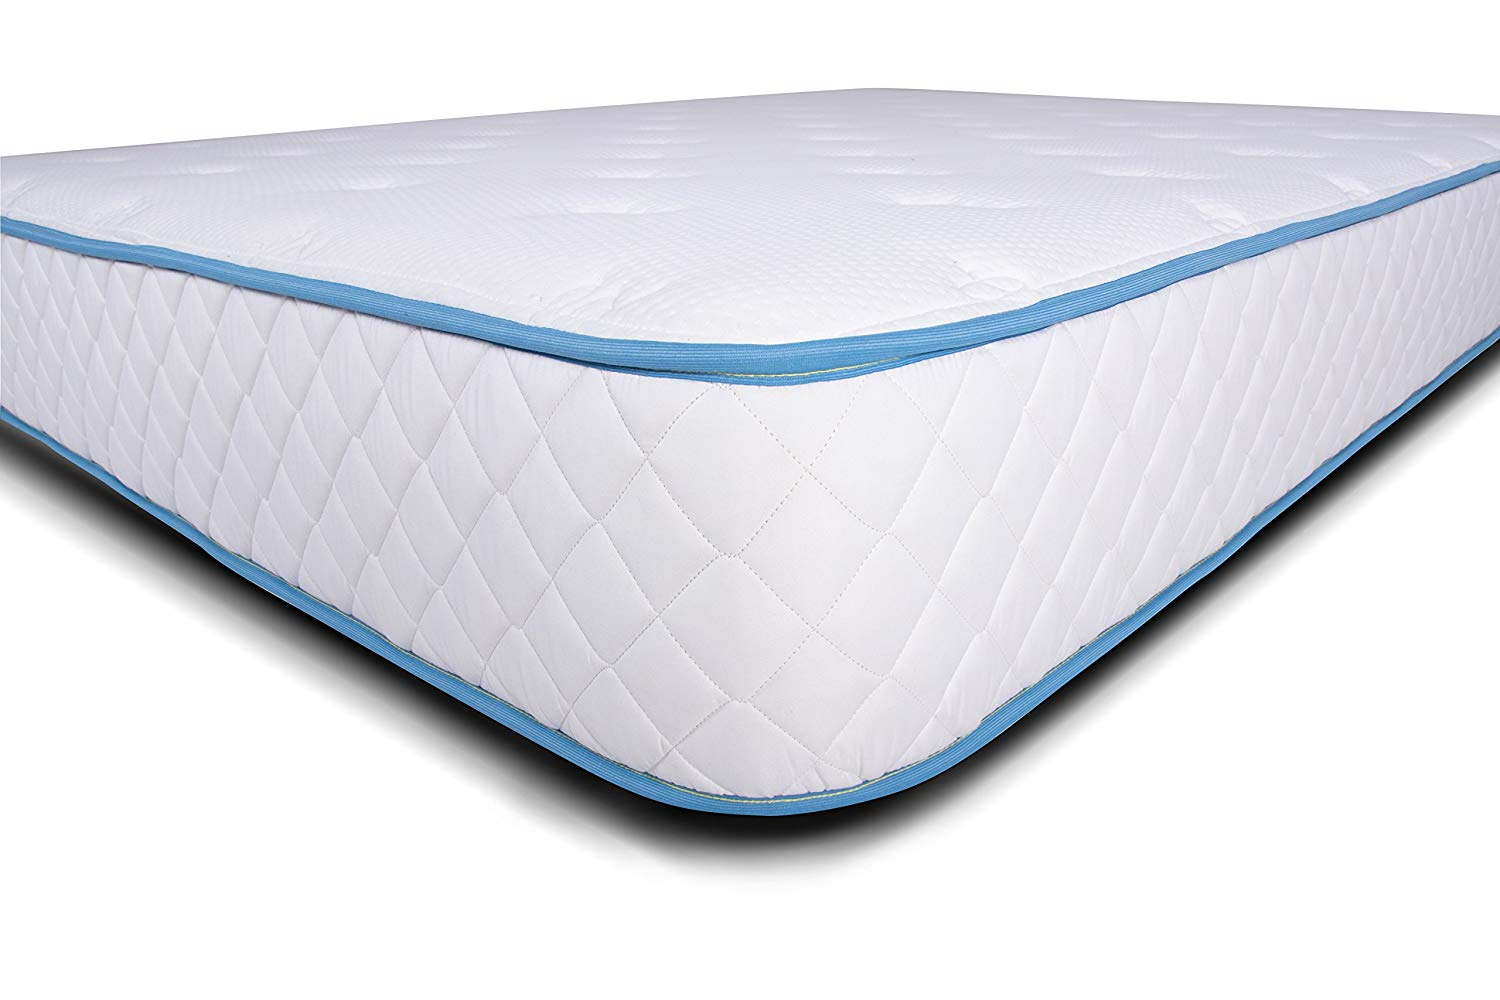 Cooling Gel memory foam Mattress